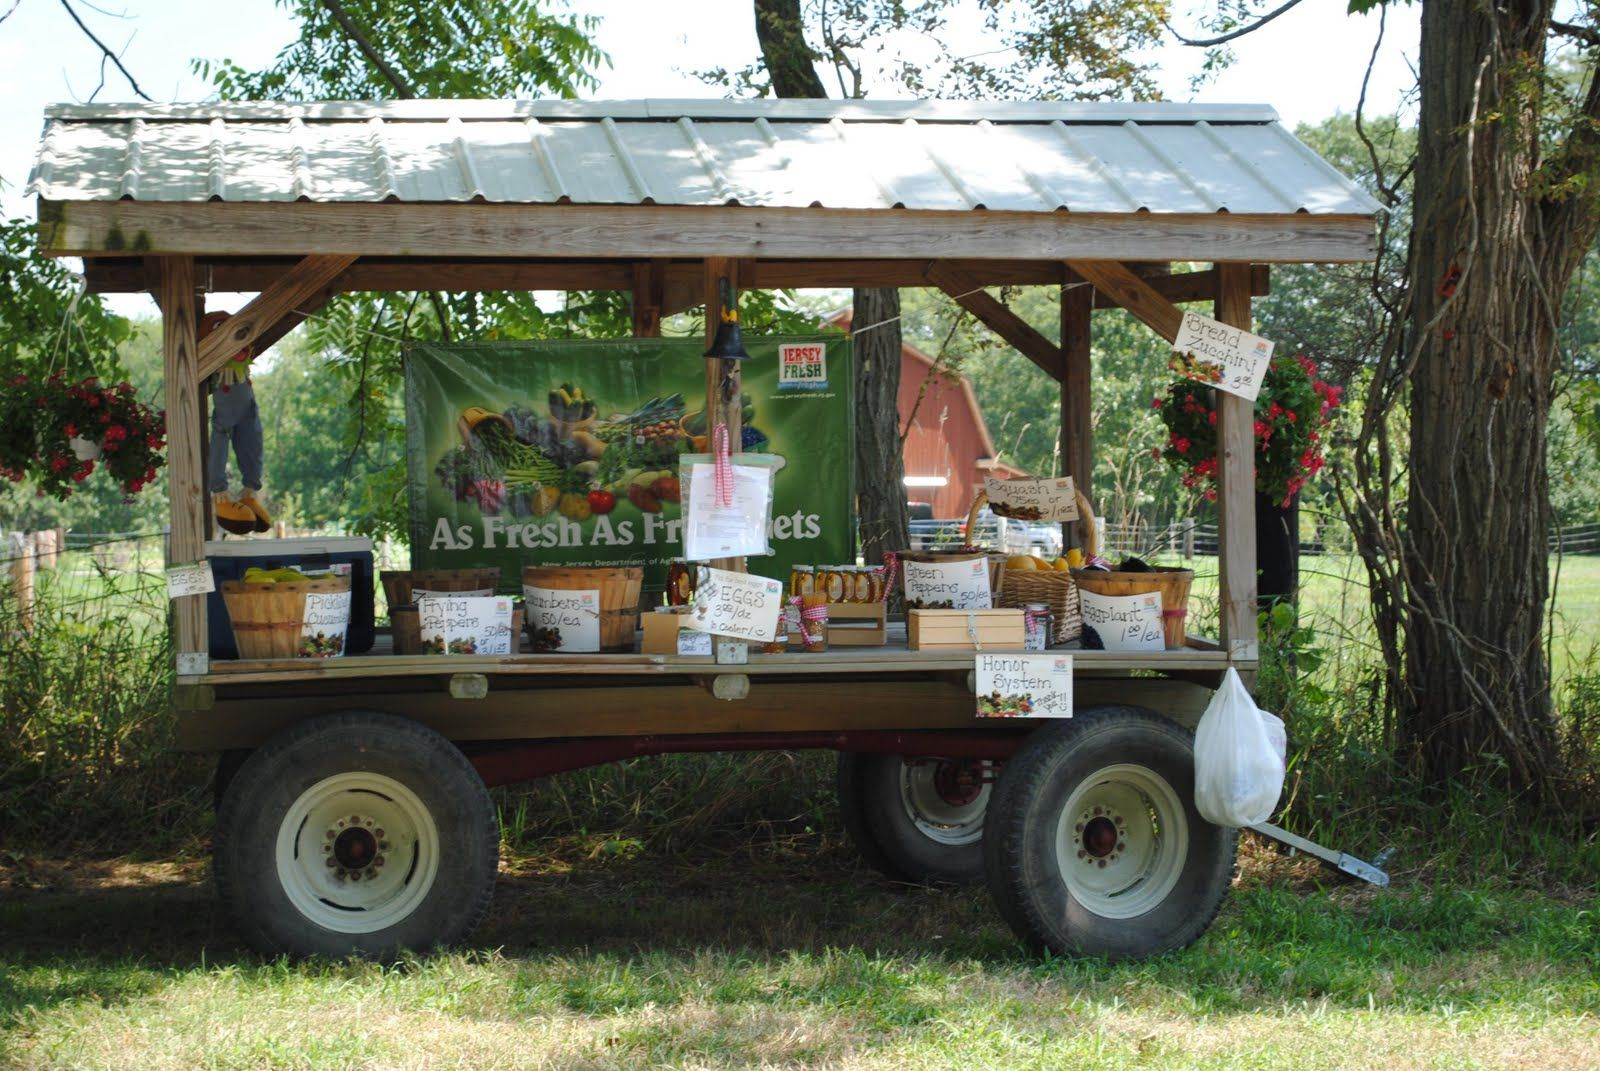 Pin by Michael Meyer on Roadside Stand / Point of Sale